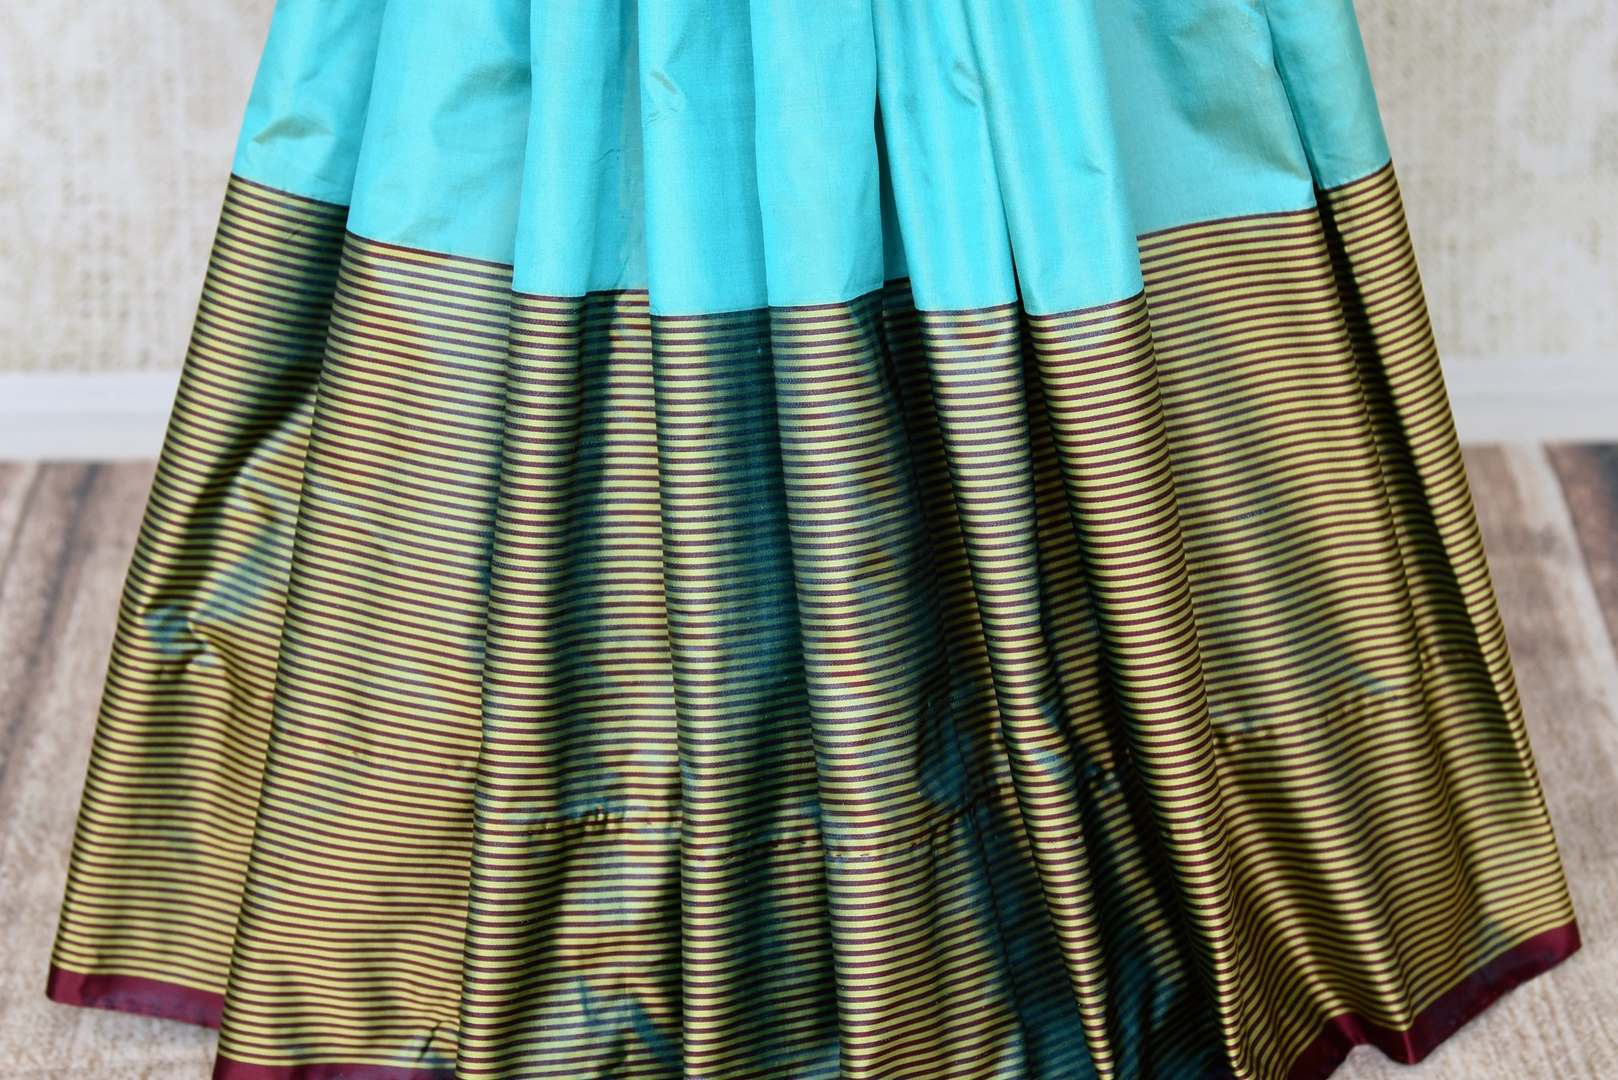 Shop turquoise blue Banarasi silk saree online in USA with striped border. Keep your wardrobe update with latest Indian handwoven sarees from Pure Elegance Indian fashion store in USA. Shop traditional Benarasi sarees, pure silk sarees for Indian women in USA from our online store.-pleats